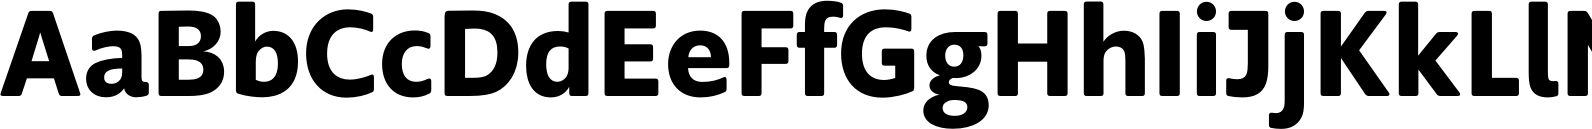 Supra Rounded Demibold Font